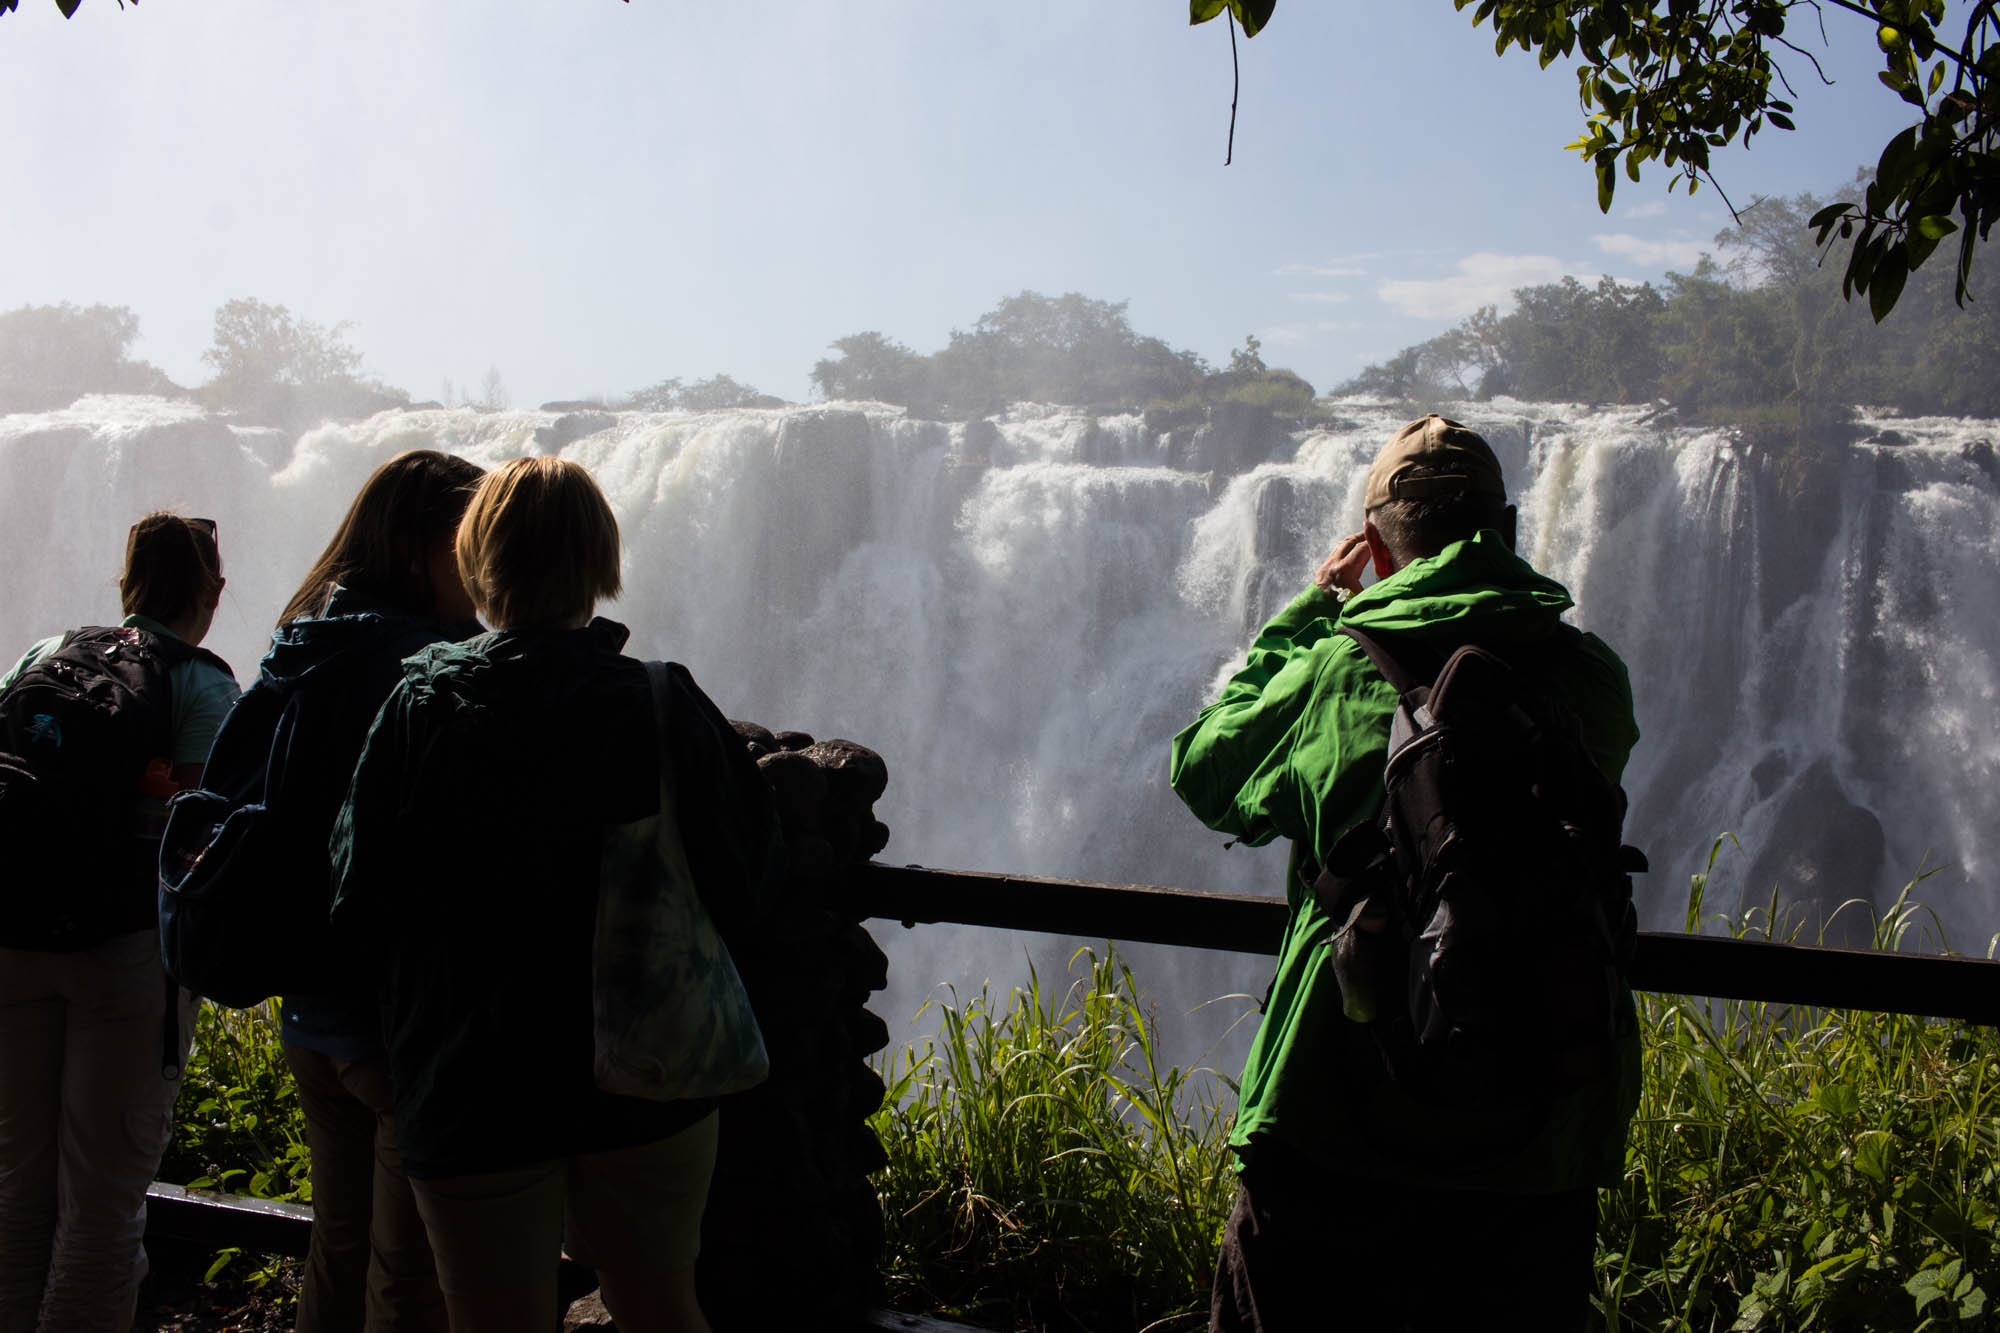 5 things to do at the victoria falls zambia, by kathi kamleitner | travelettes.net